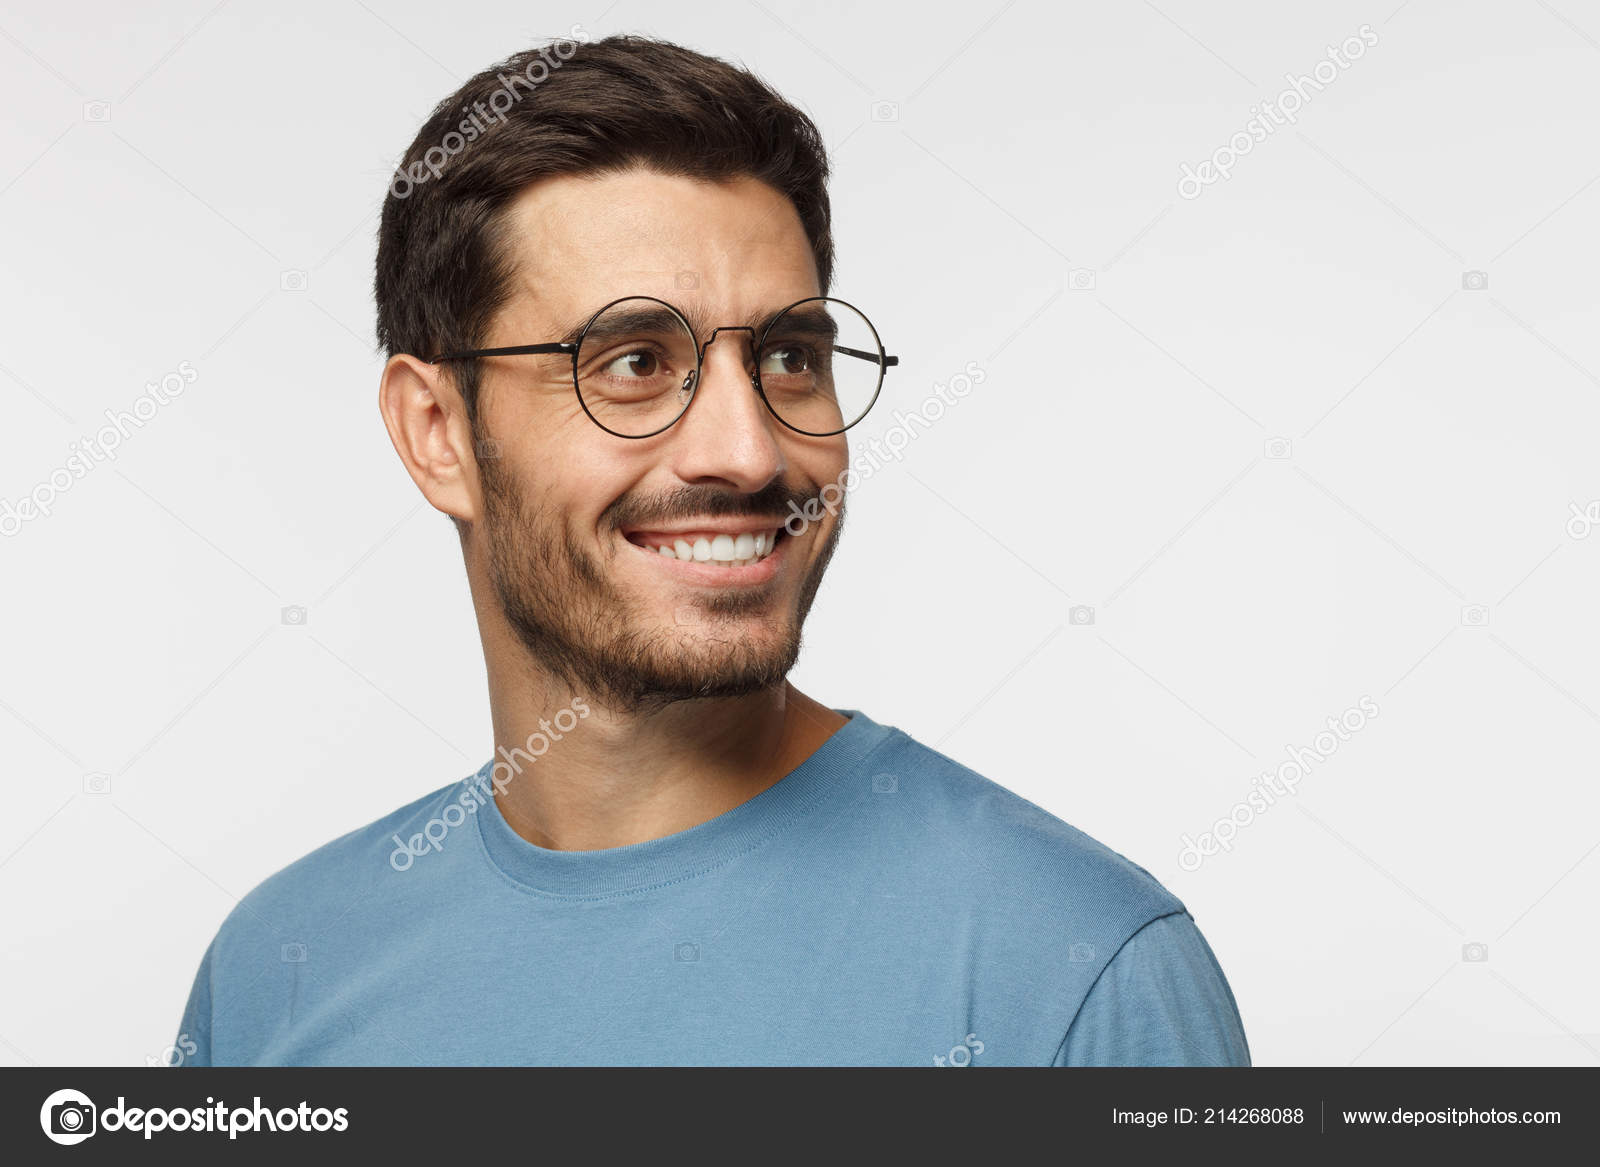 a80fb8de060 Closeup headshot of young man in round eyeglasses isolated on gray  background